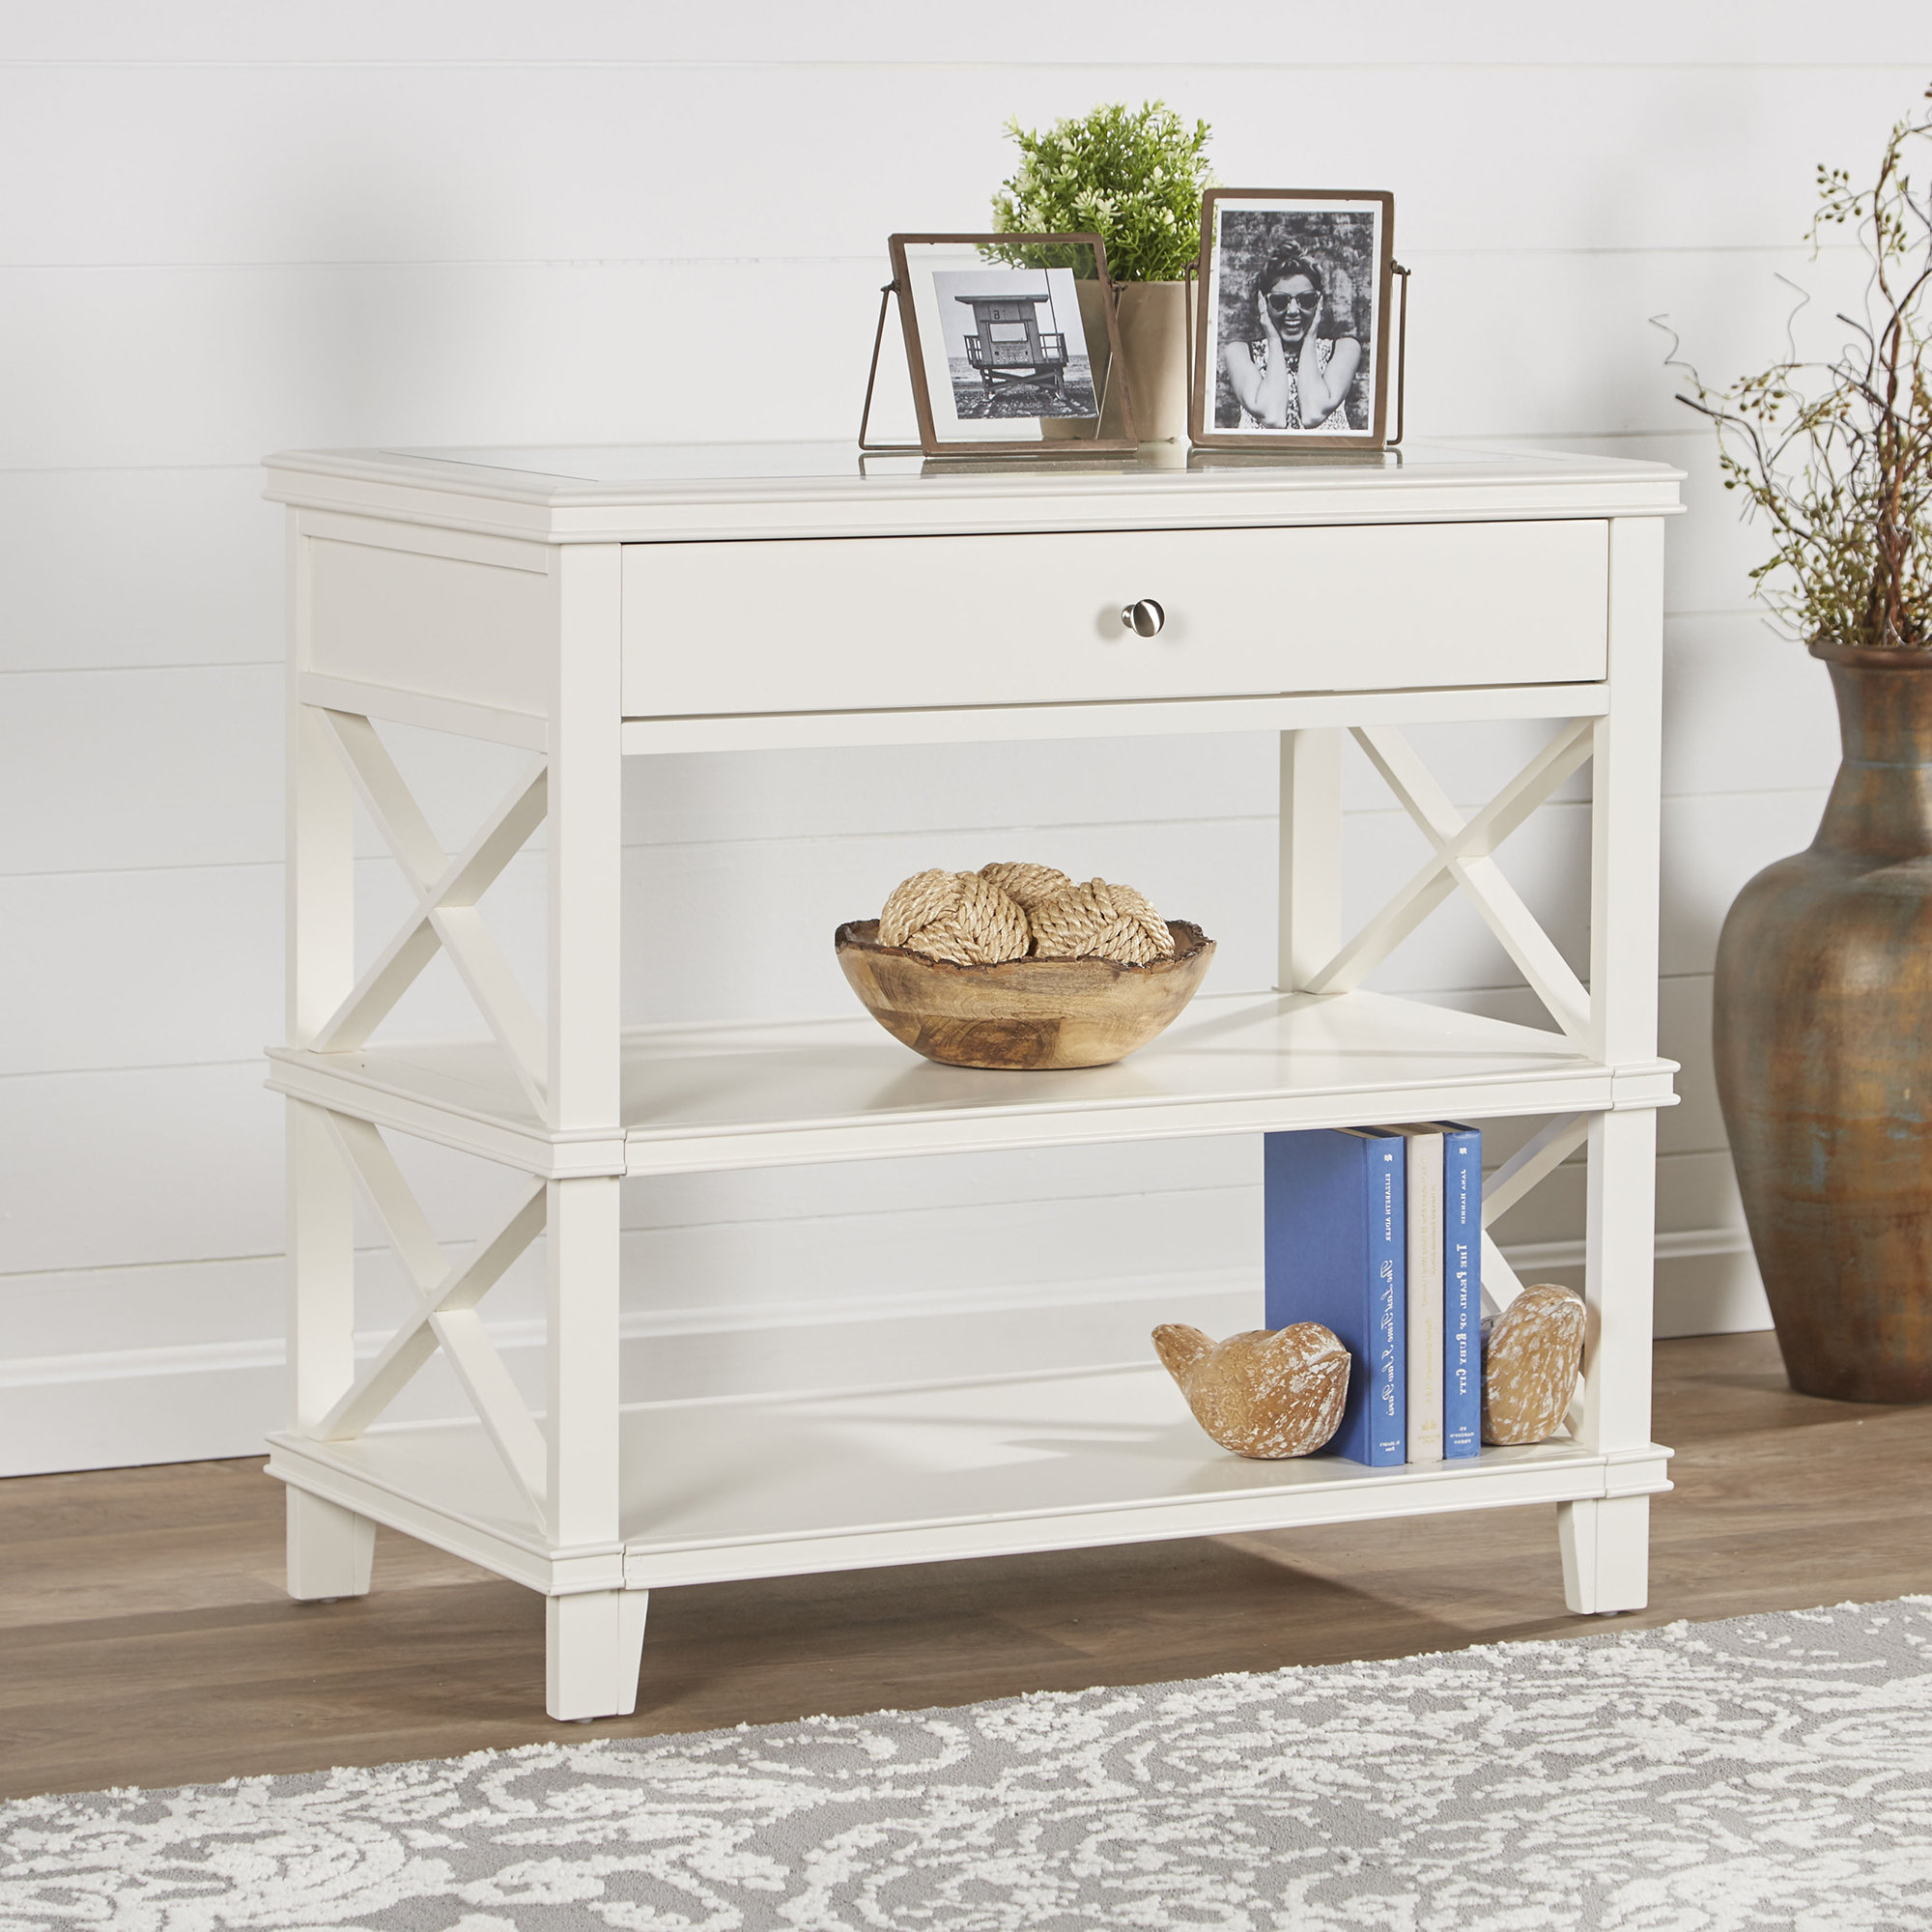 Bachelor's Chest Nightstands | Birch Lane With Raven Grey Tv Stands (View 10 of 20)